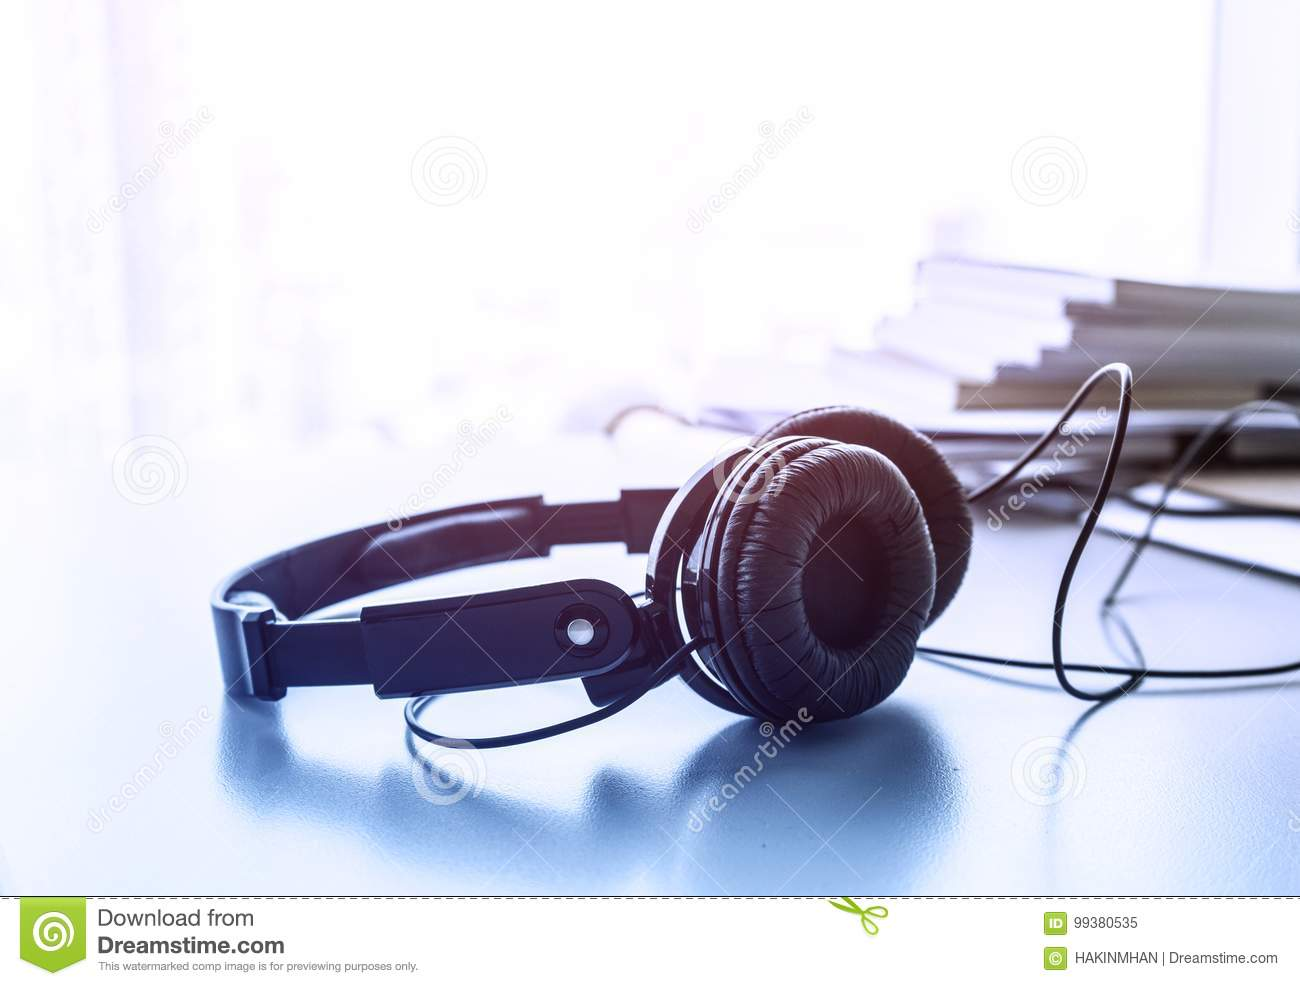 Office relaxation Comfy Headphones On Desk In Office For Relaxation Concept Dreamstimecom Headphones On Desk In Office For Relaxation Concept Stock Image